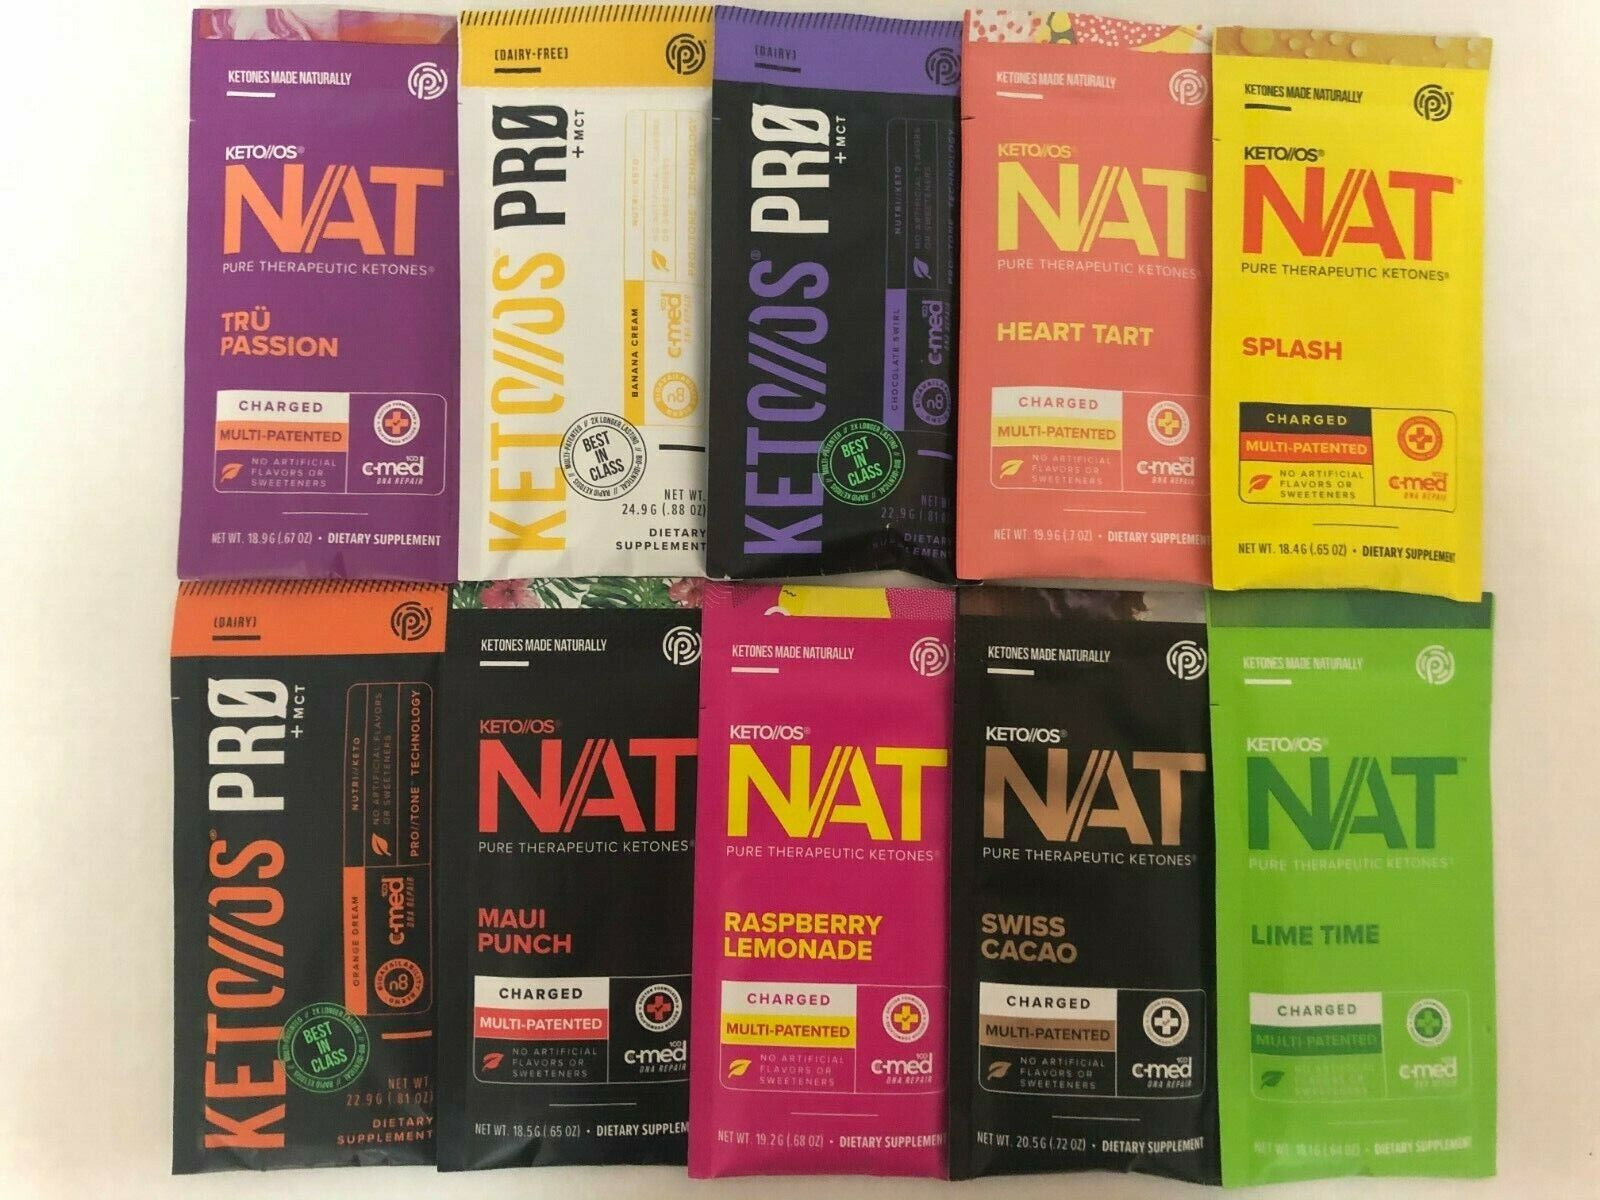 Pruvit Keto OS MAX NAT Ketones Packet 5,10, 20 Days VARIOUS FLAVORSorMixed Packs 8